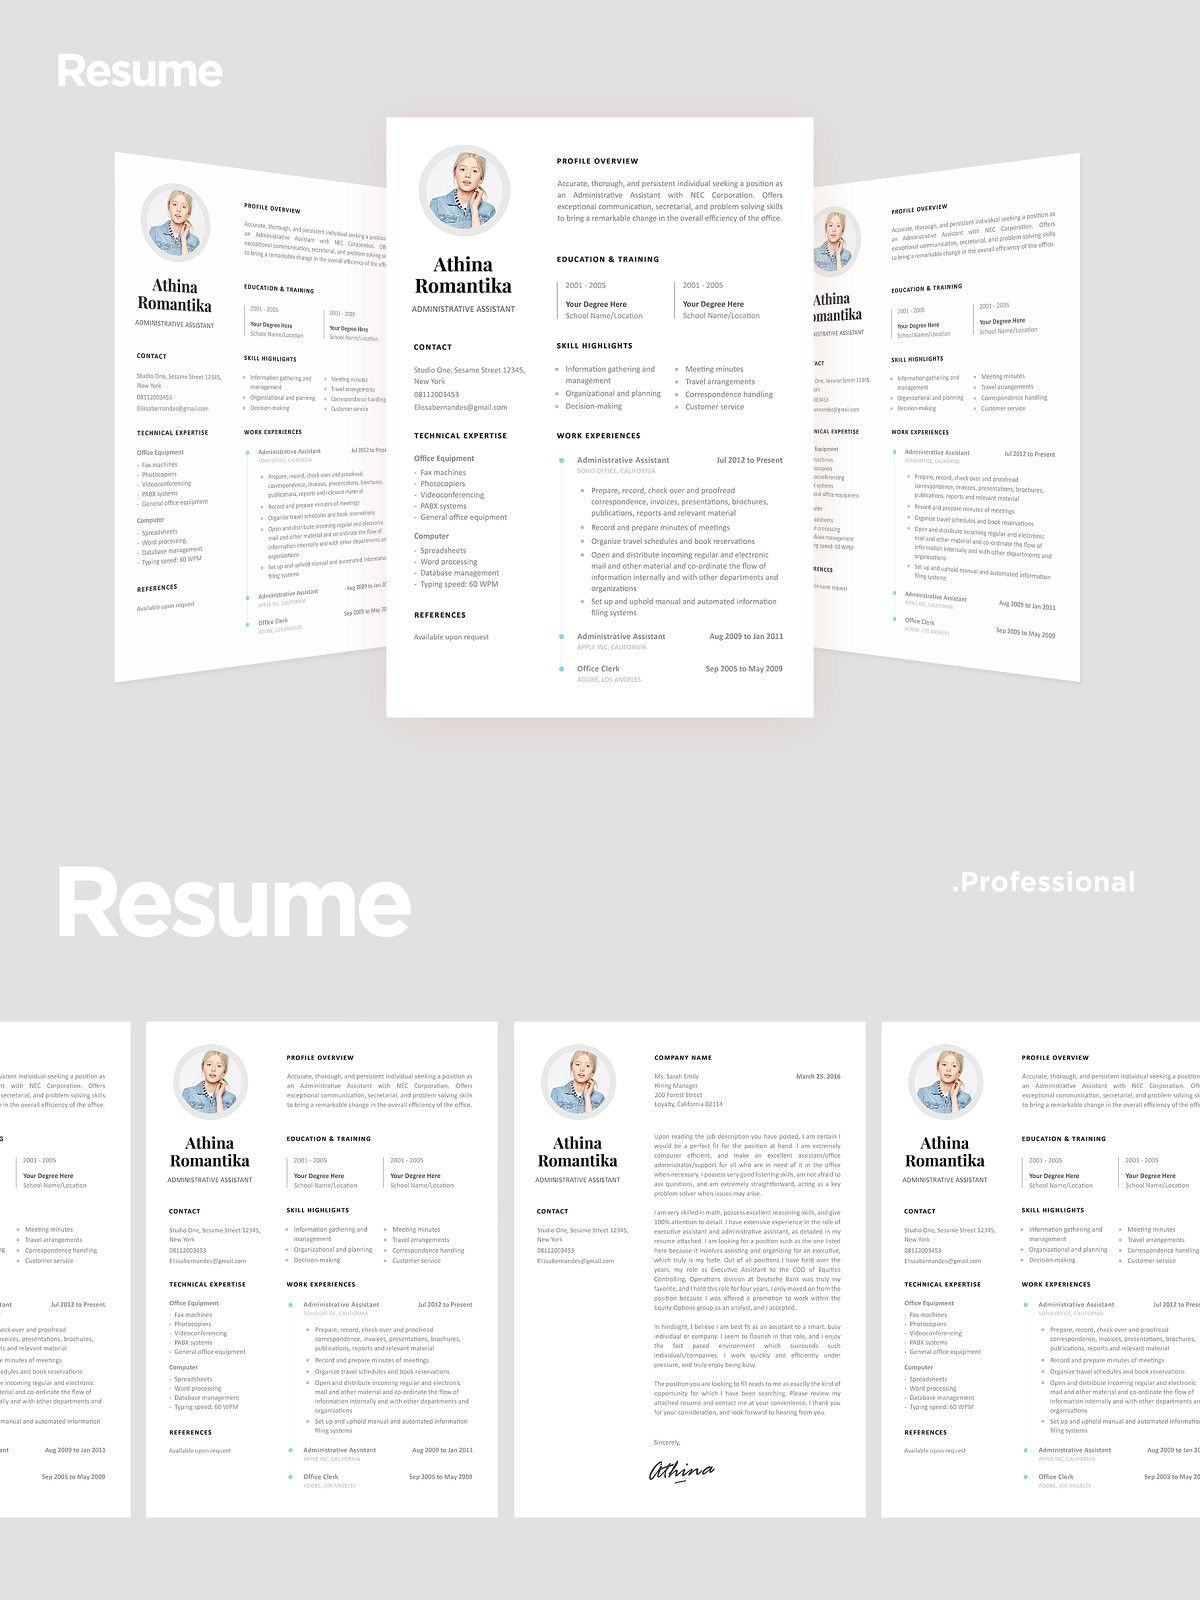 Administrative Assistant Resume Administrative assistant